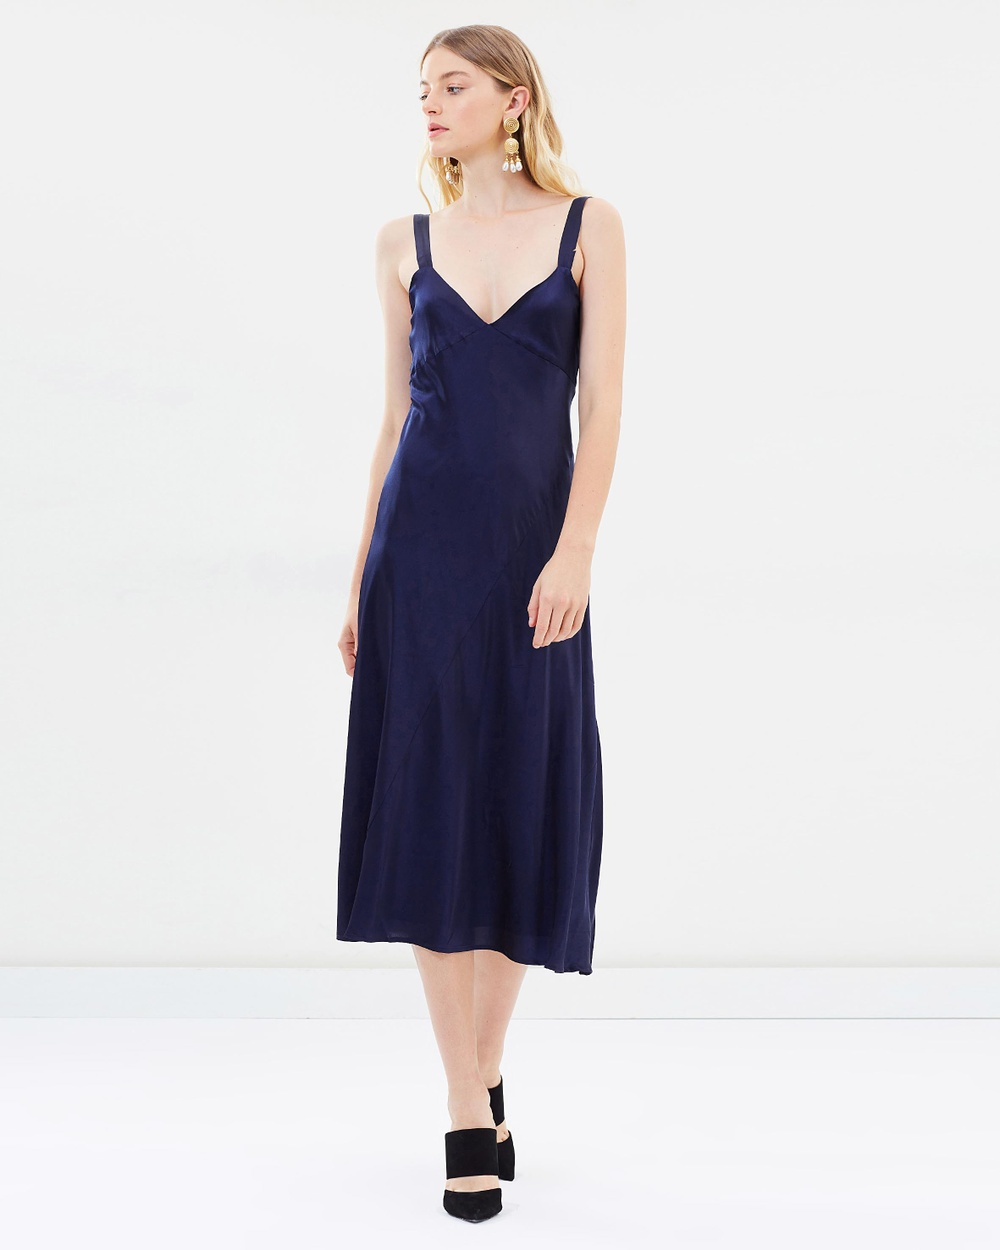 Hansen & Gretel Goldie Silk Dress Dresses Deep Navy Goldie Silk Dress